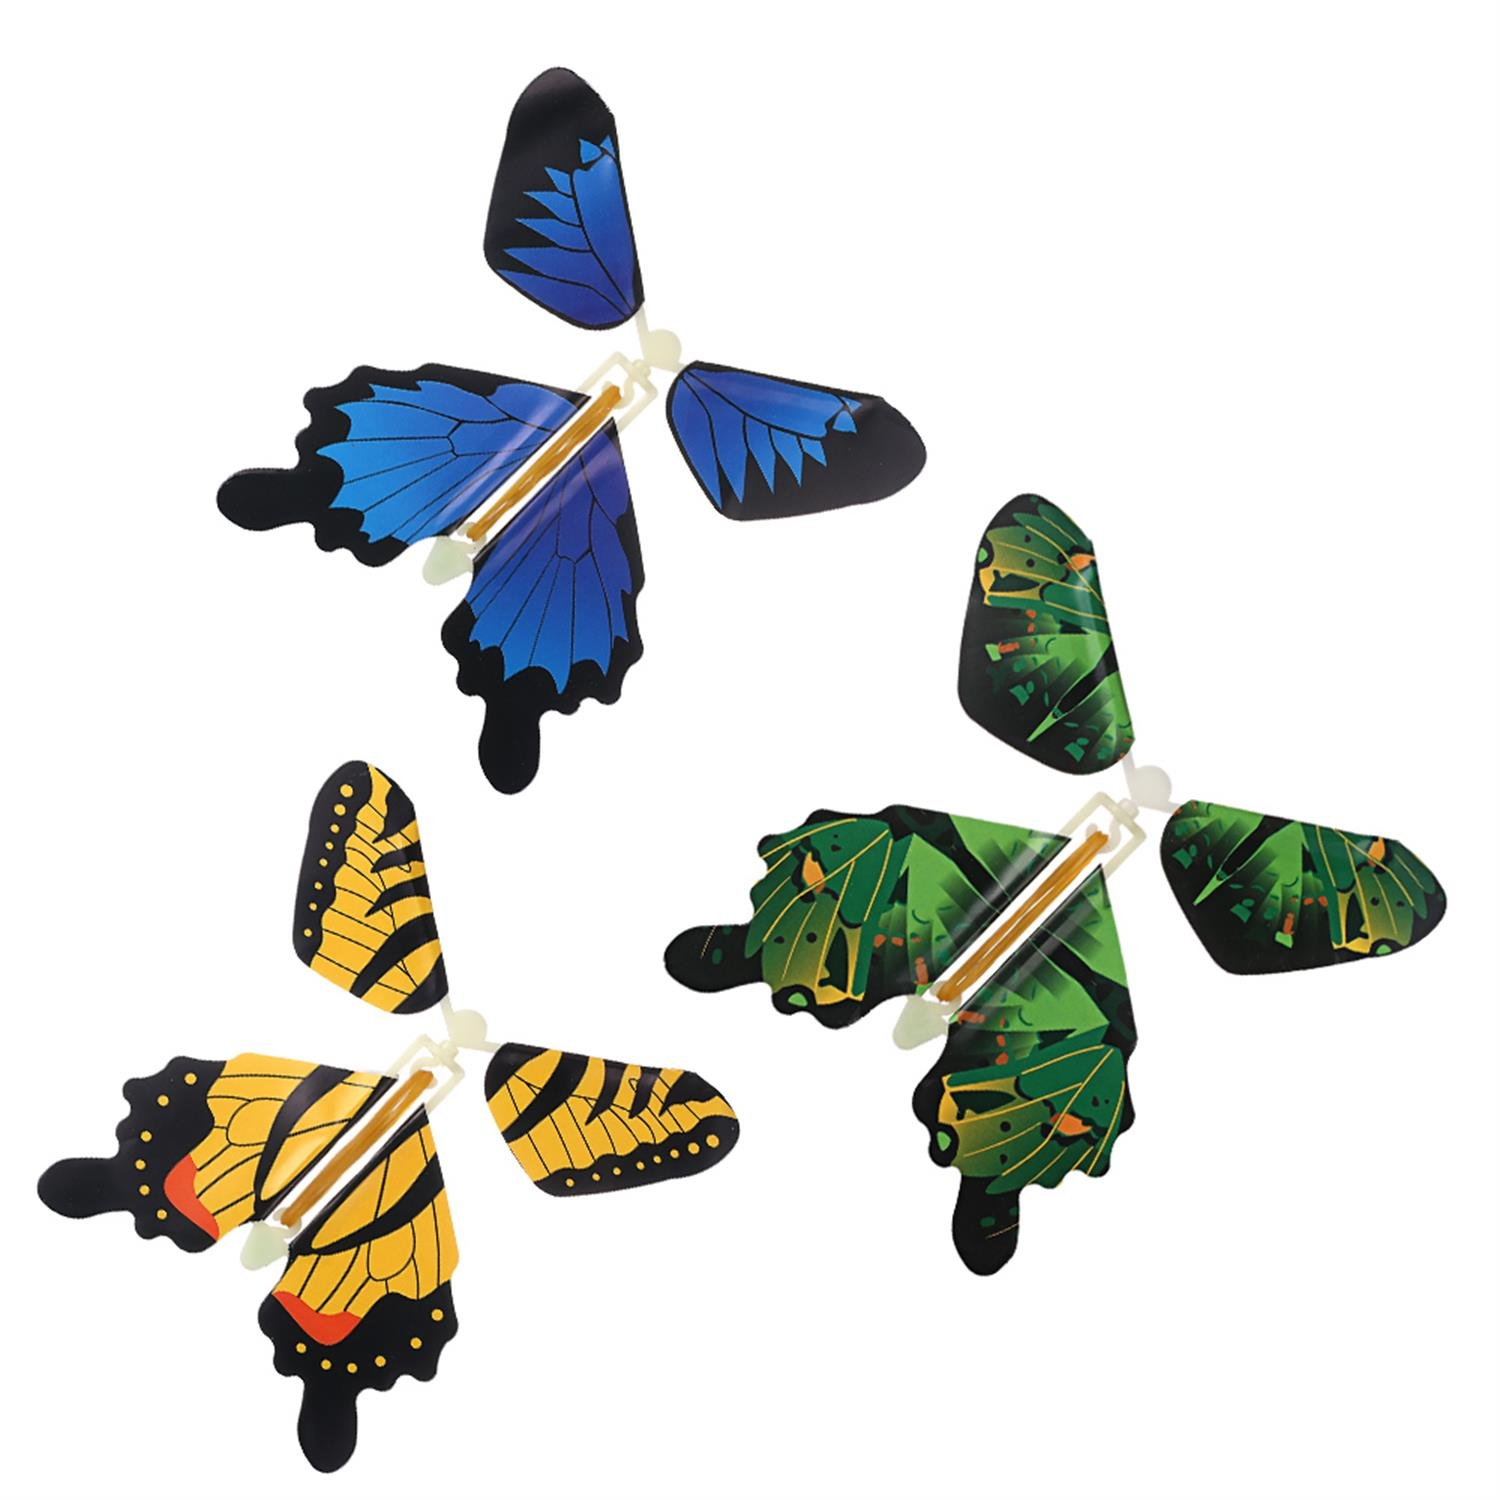 IDMSON Magic Butterfly Flying In The Book Fairy Toy Rubber Band Powered Wind Up Great Surprise